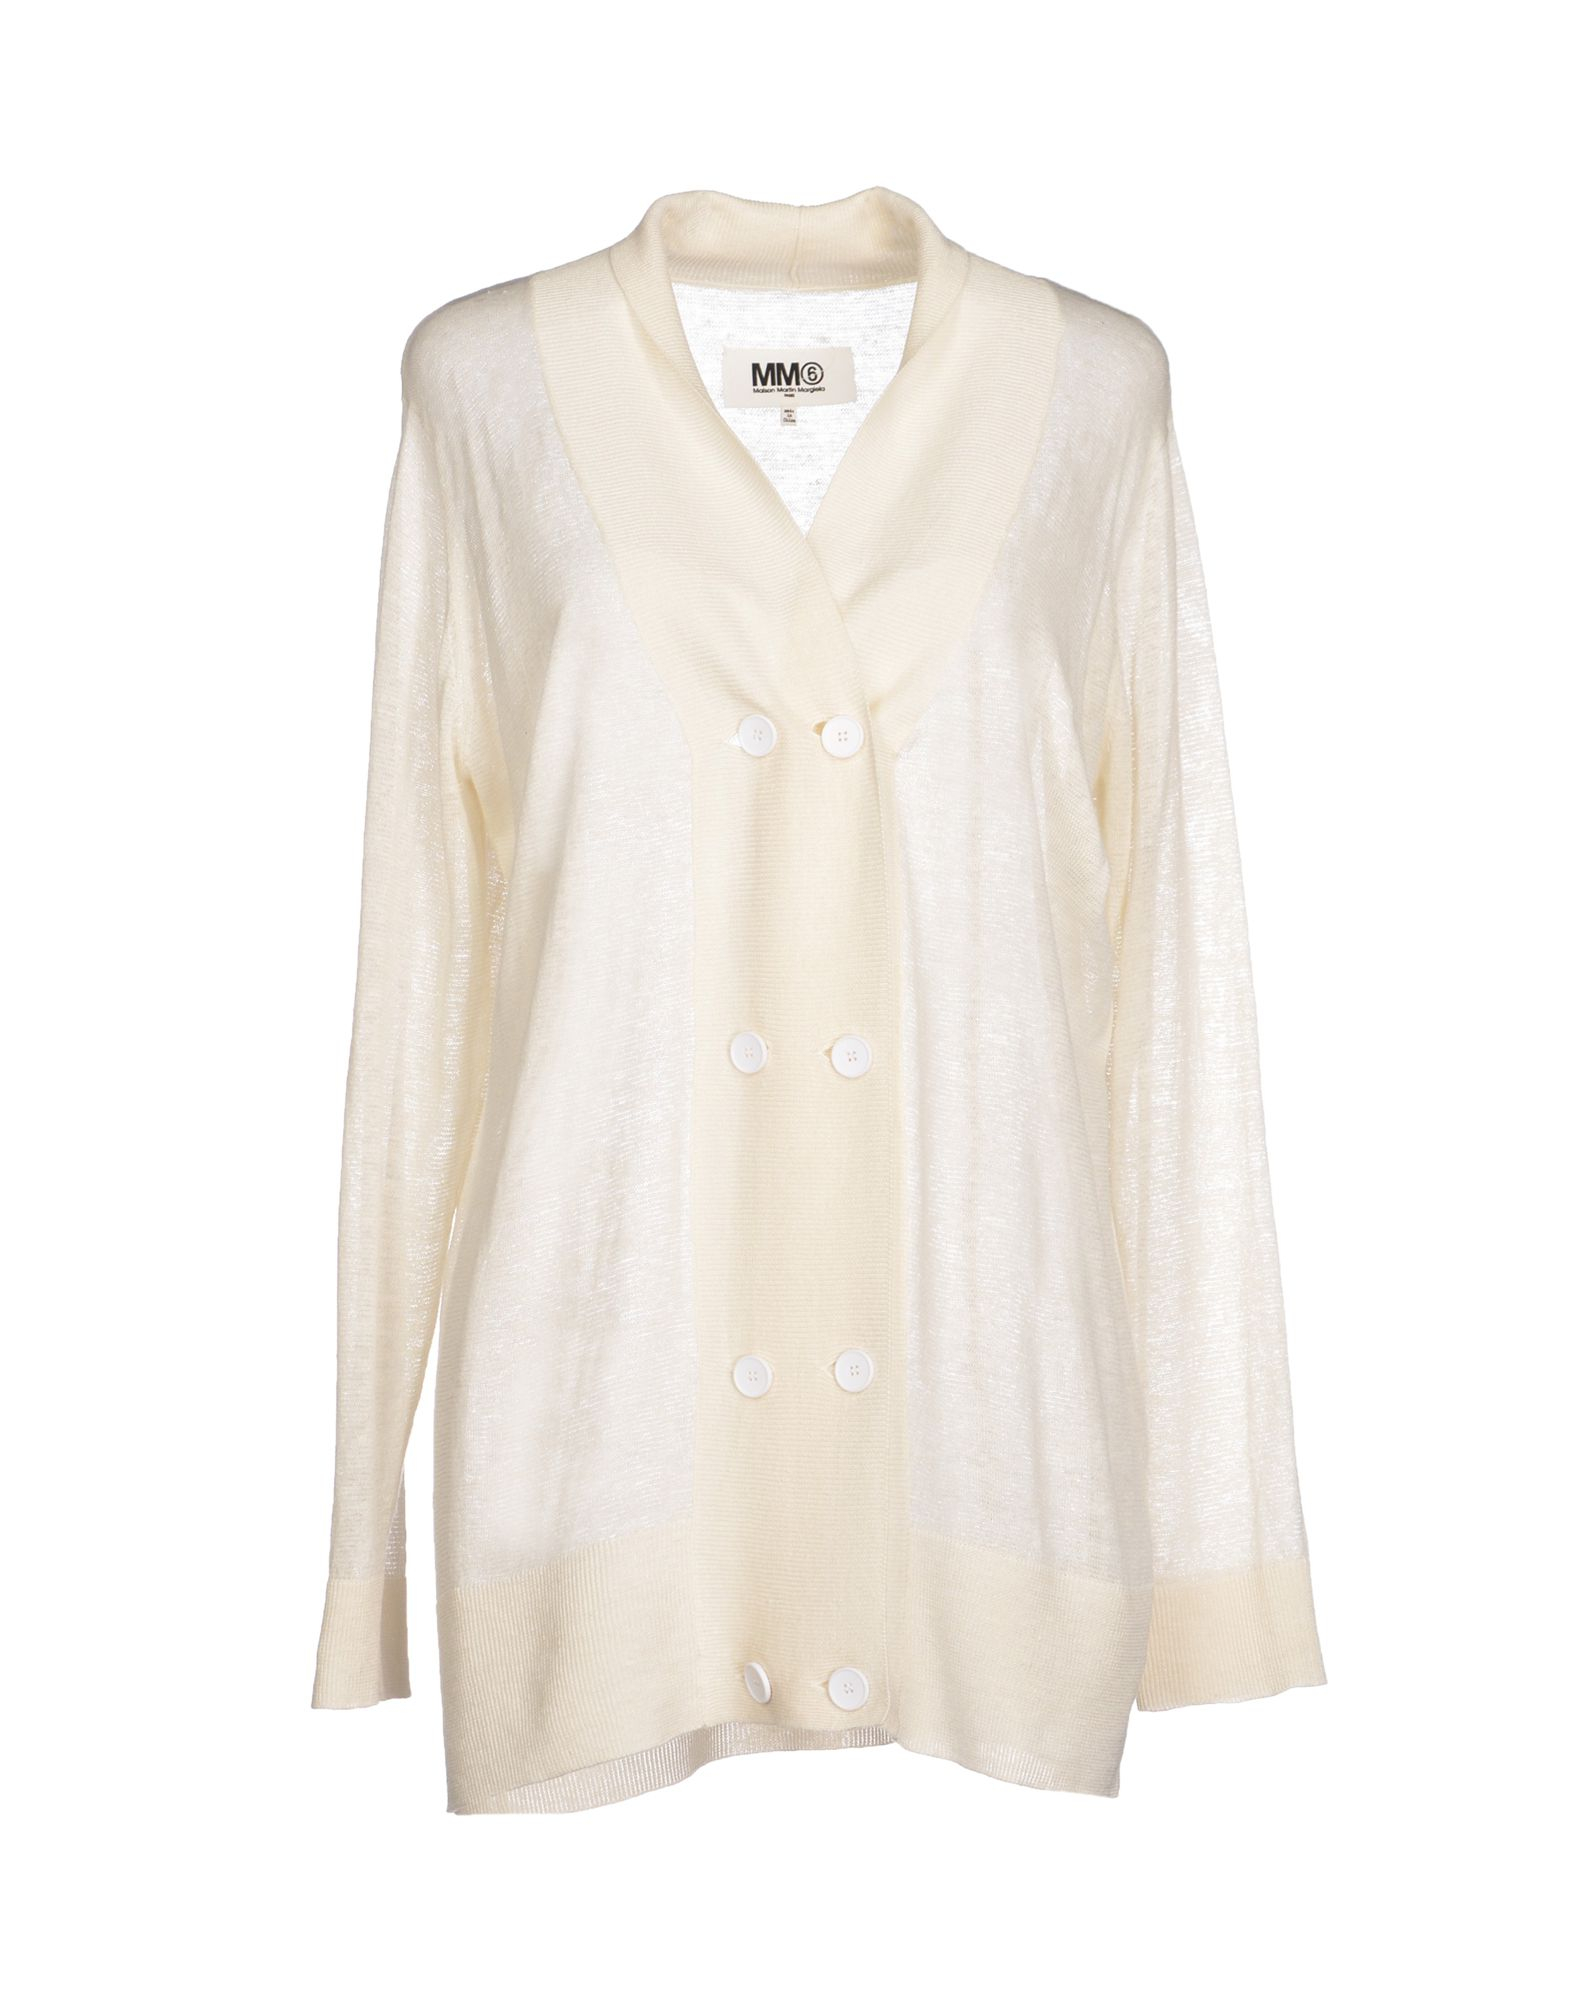 Mm6 by maison martin margiela cardigan in white ivory lyst for Mm6 maison margiela